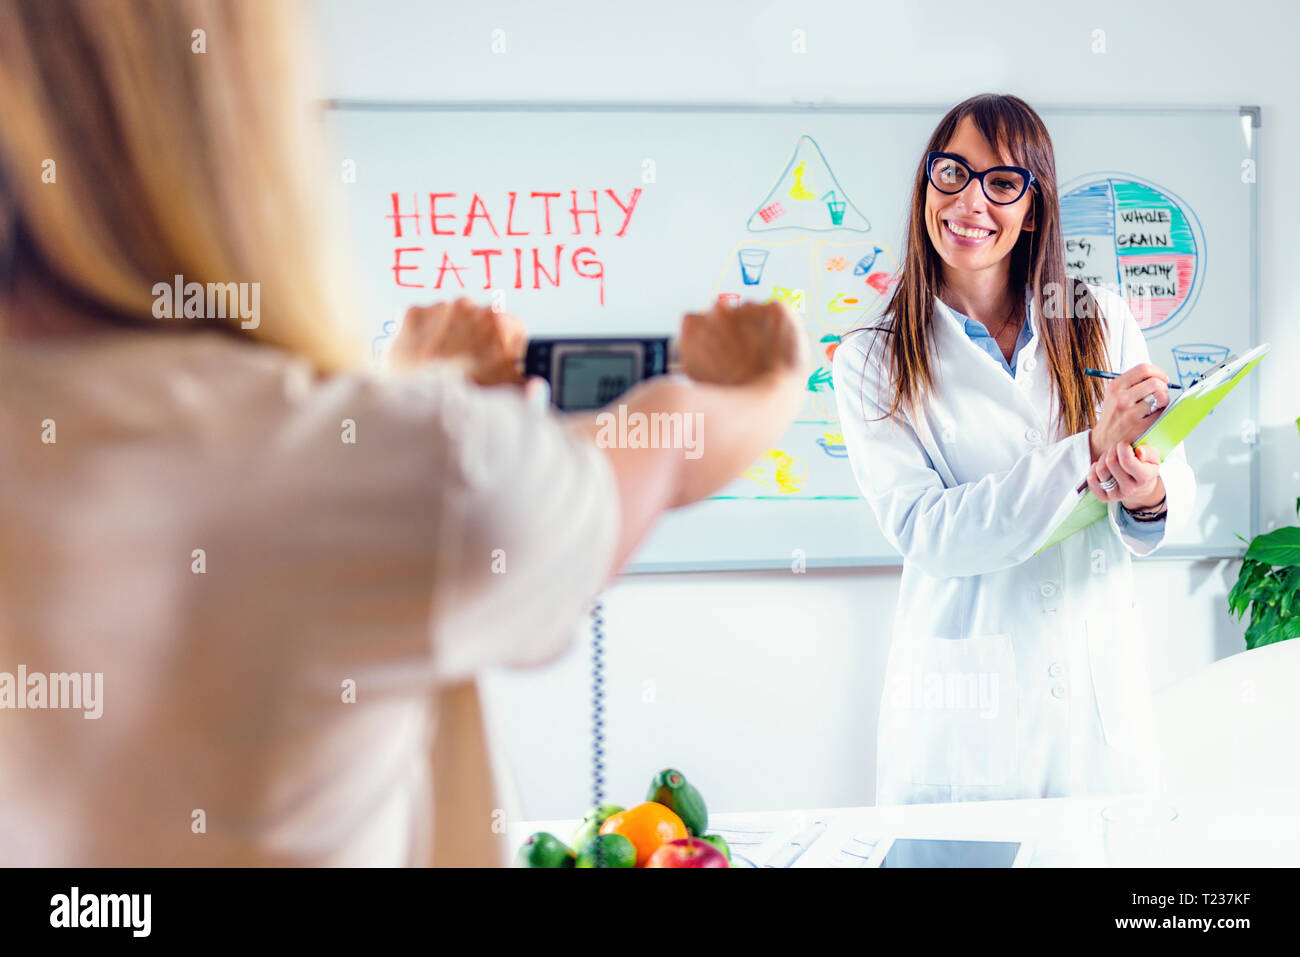 Measuring body fat with electronic scales. - Stock Image